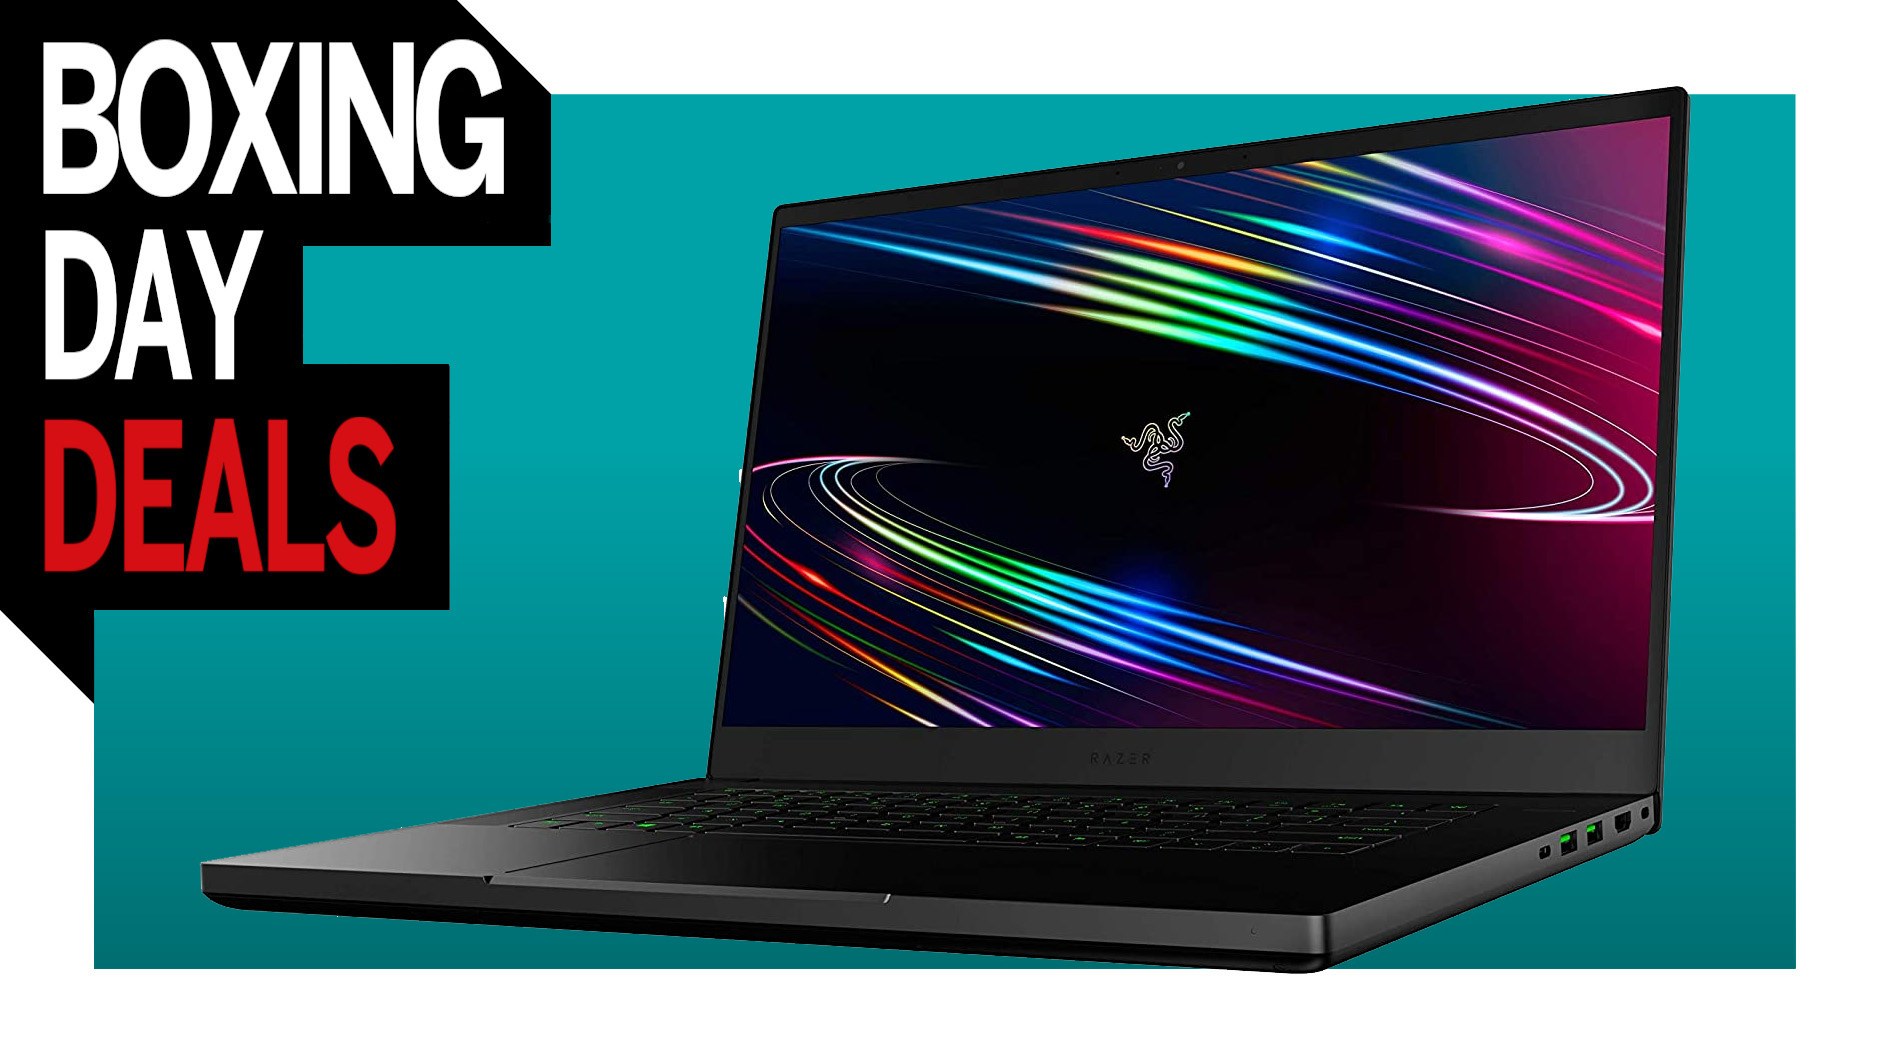 Save £500 on our favourite gaming laptop, the Razer Blade 15 (2020)